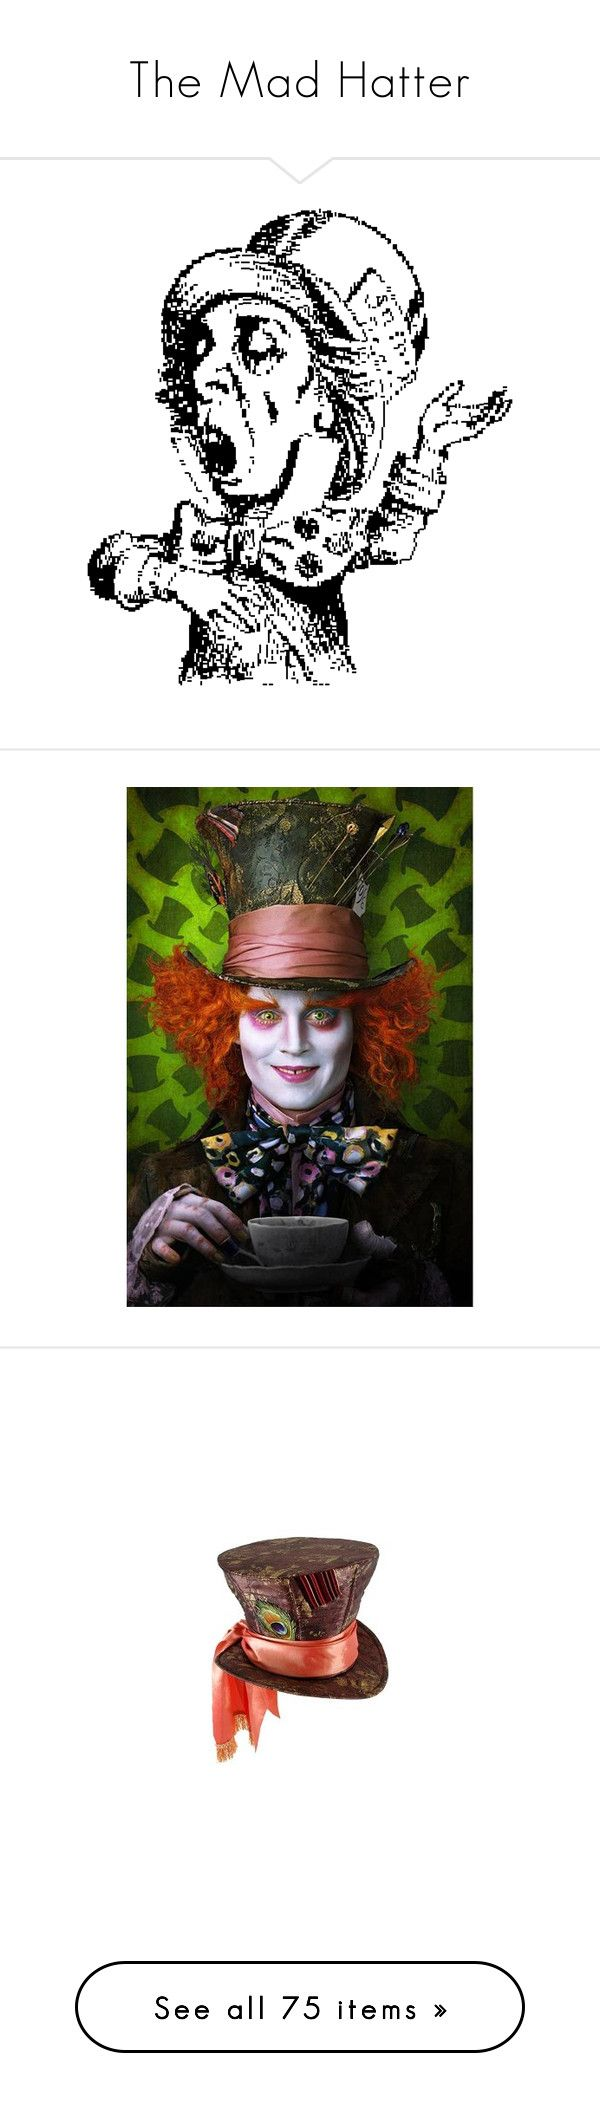 """The Mad Hatter"" by shannen-legere-lavigne ❤ liked on Polyvore featuring alice in wonderland, mad hatter, backgrounds, johnny depp, hats, accessories, costumes, miniature top hats, top hat and green fascinator"